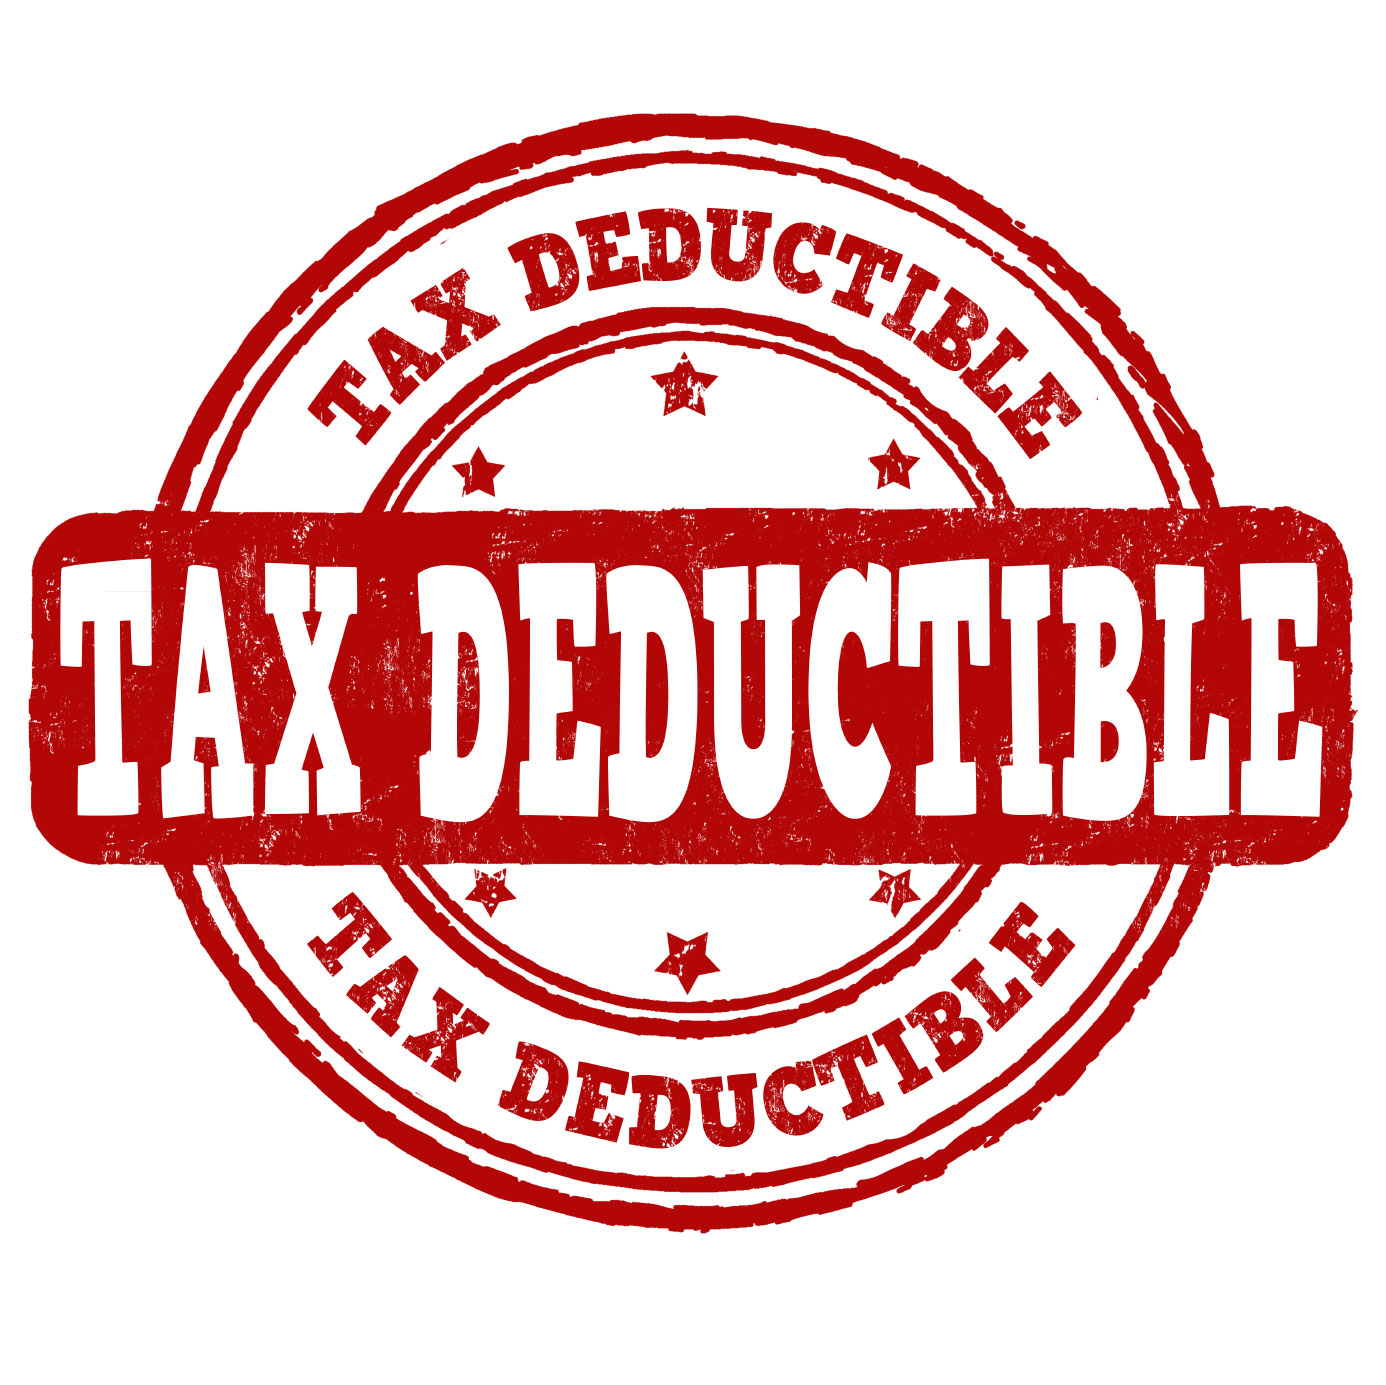 Are these expenses tax-deductible?